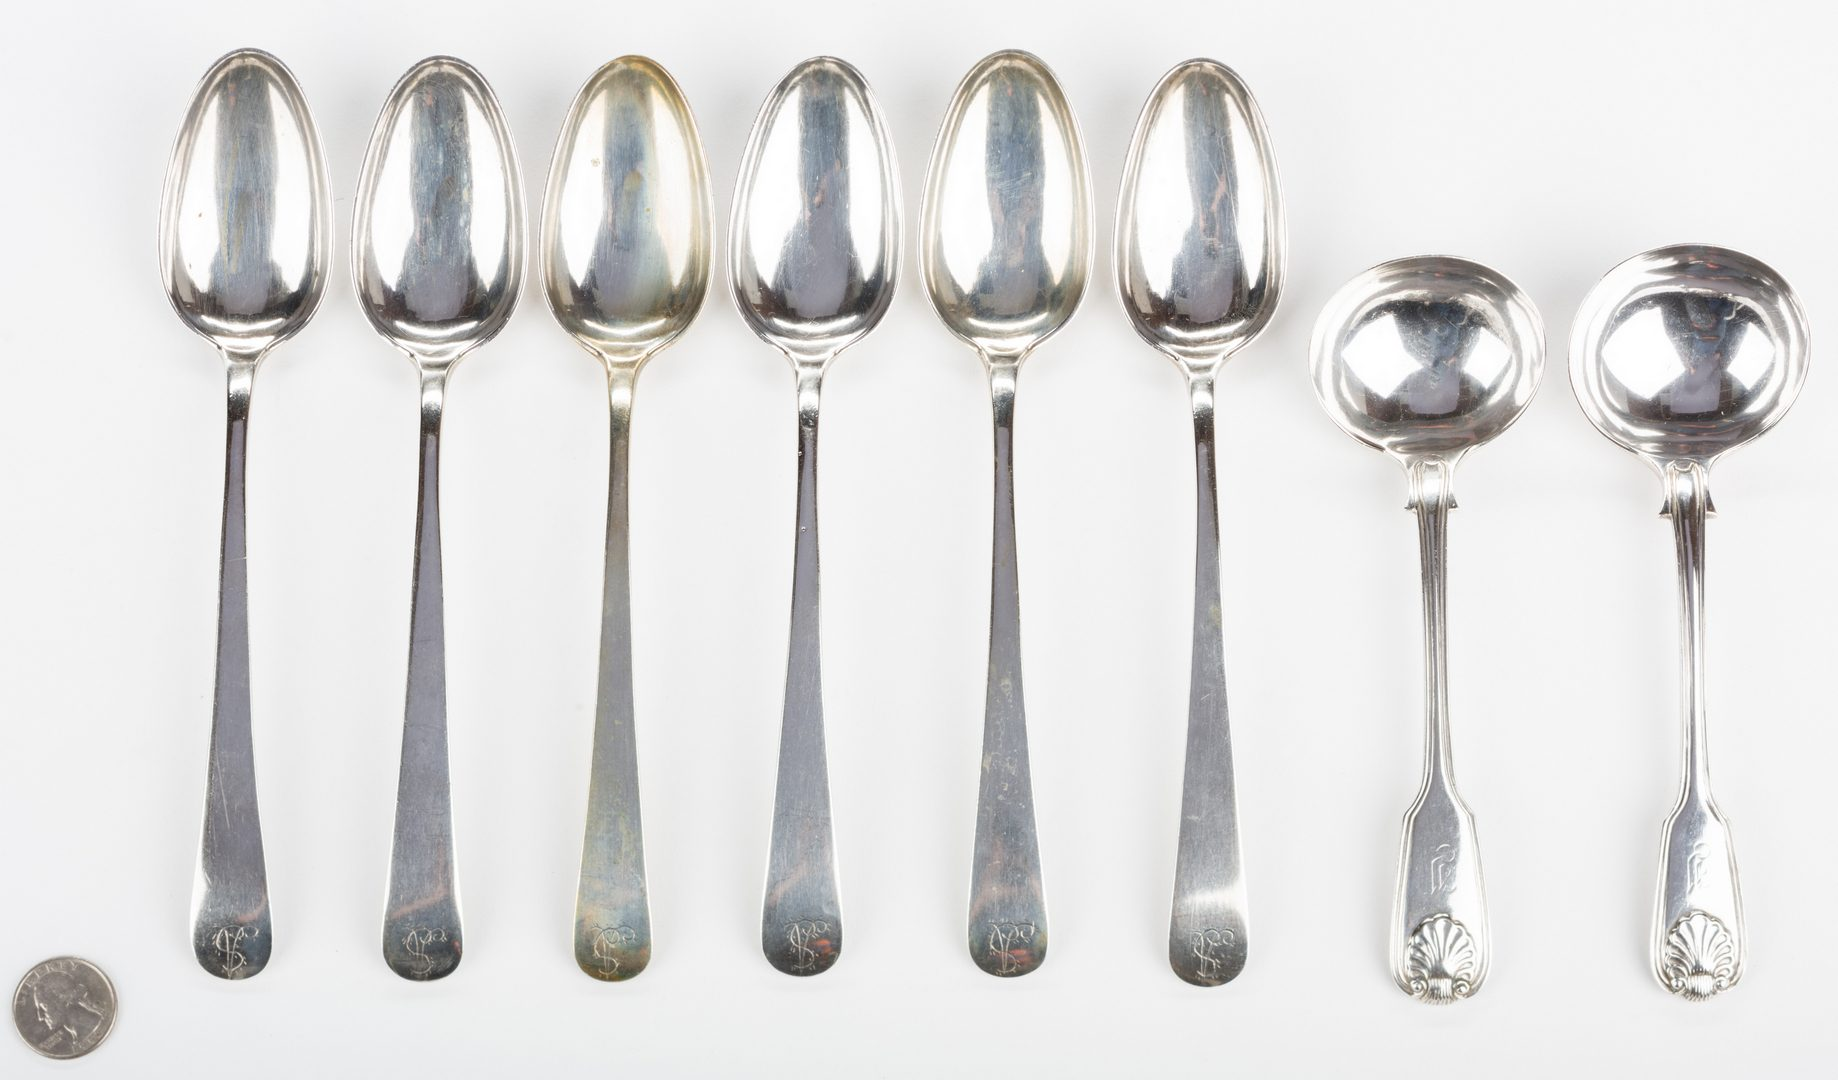 Lot 259: Asian Export Silver Flatware, 8 pcs